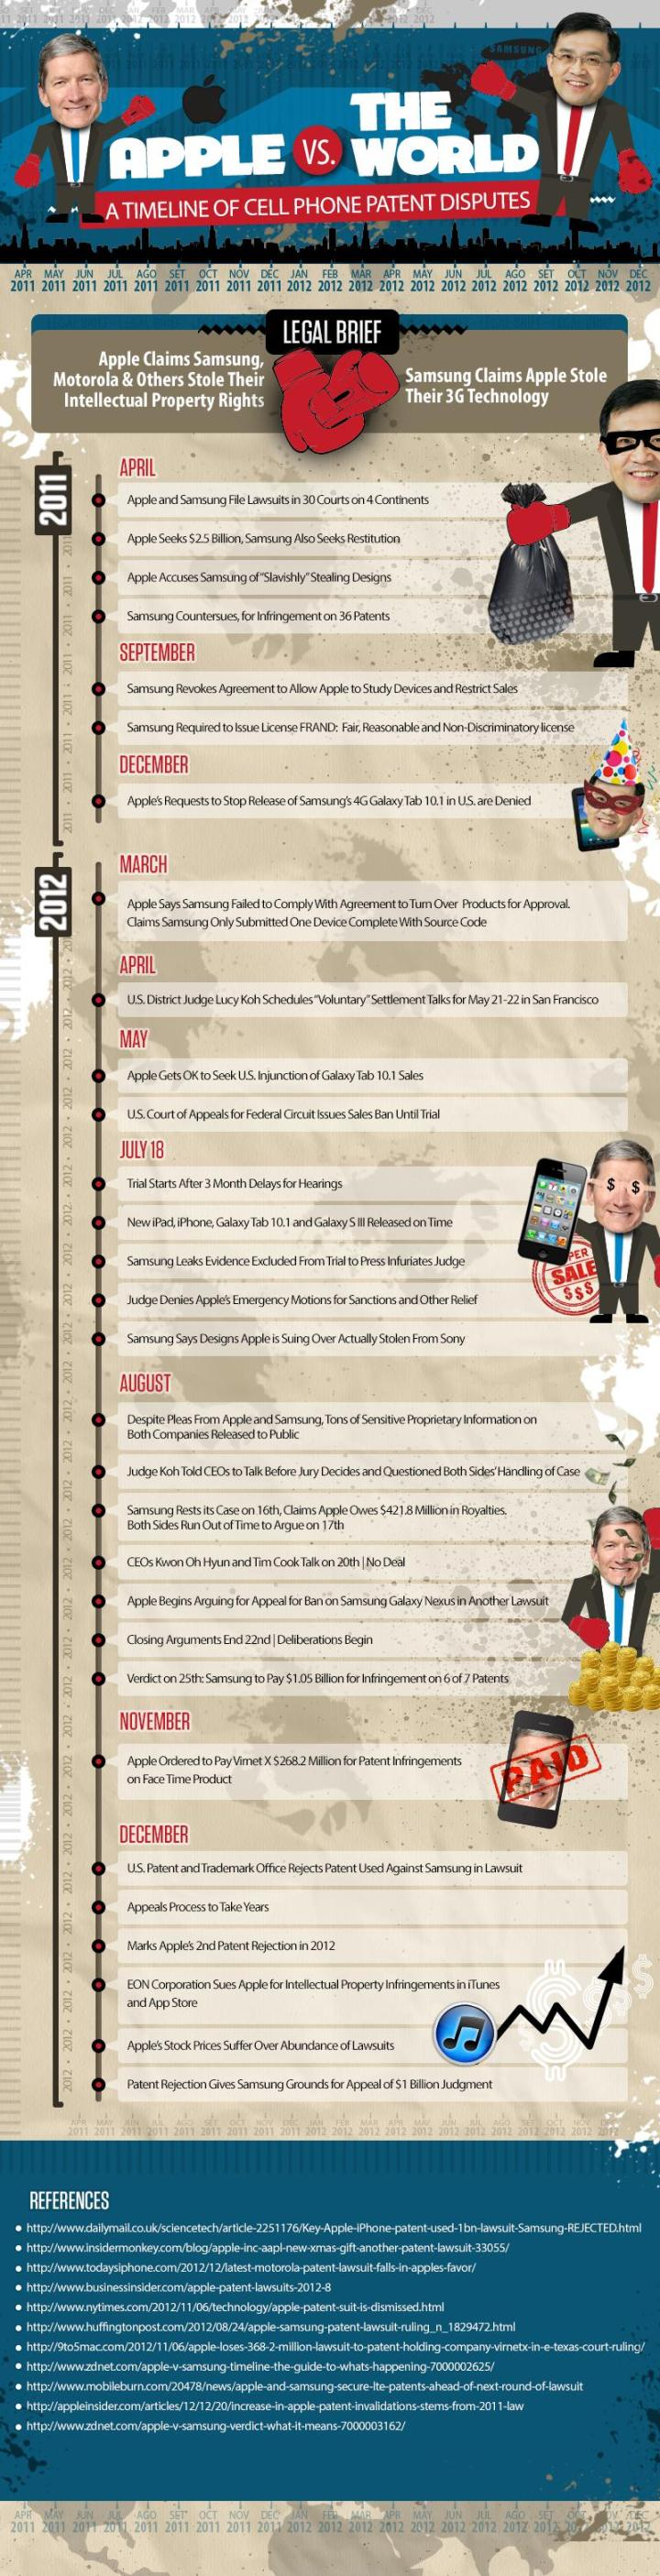 Apple Vs The World - A Timeline Of Patent Disputes